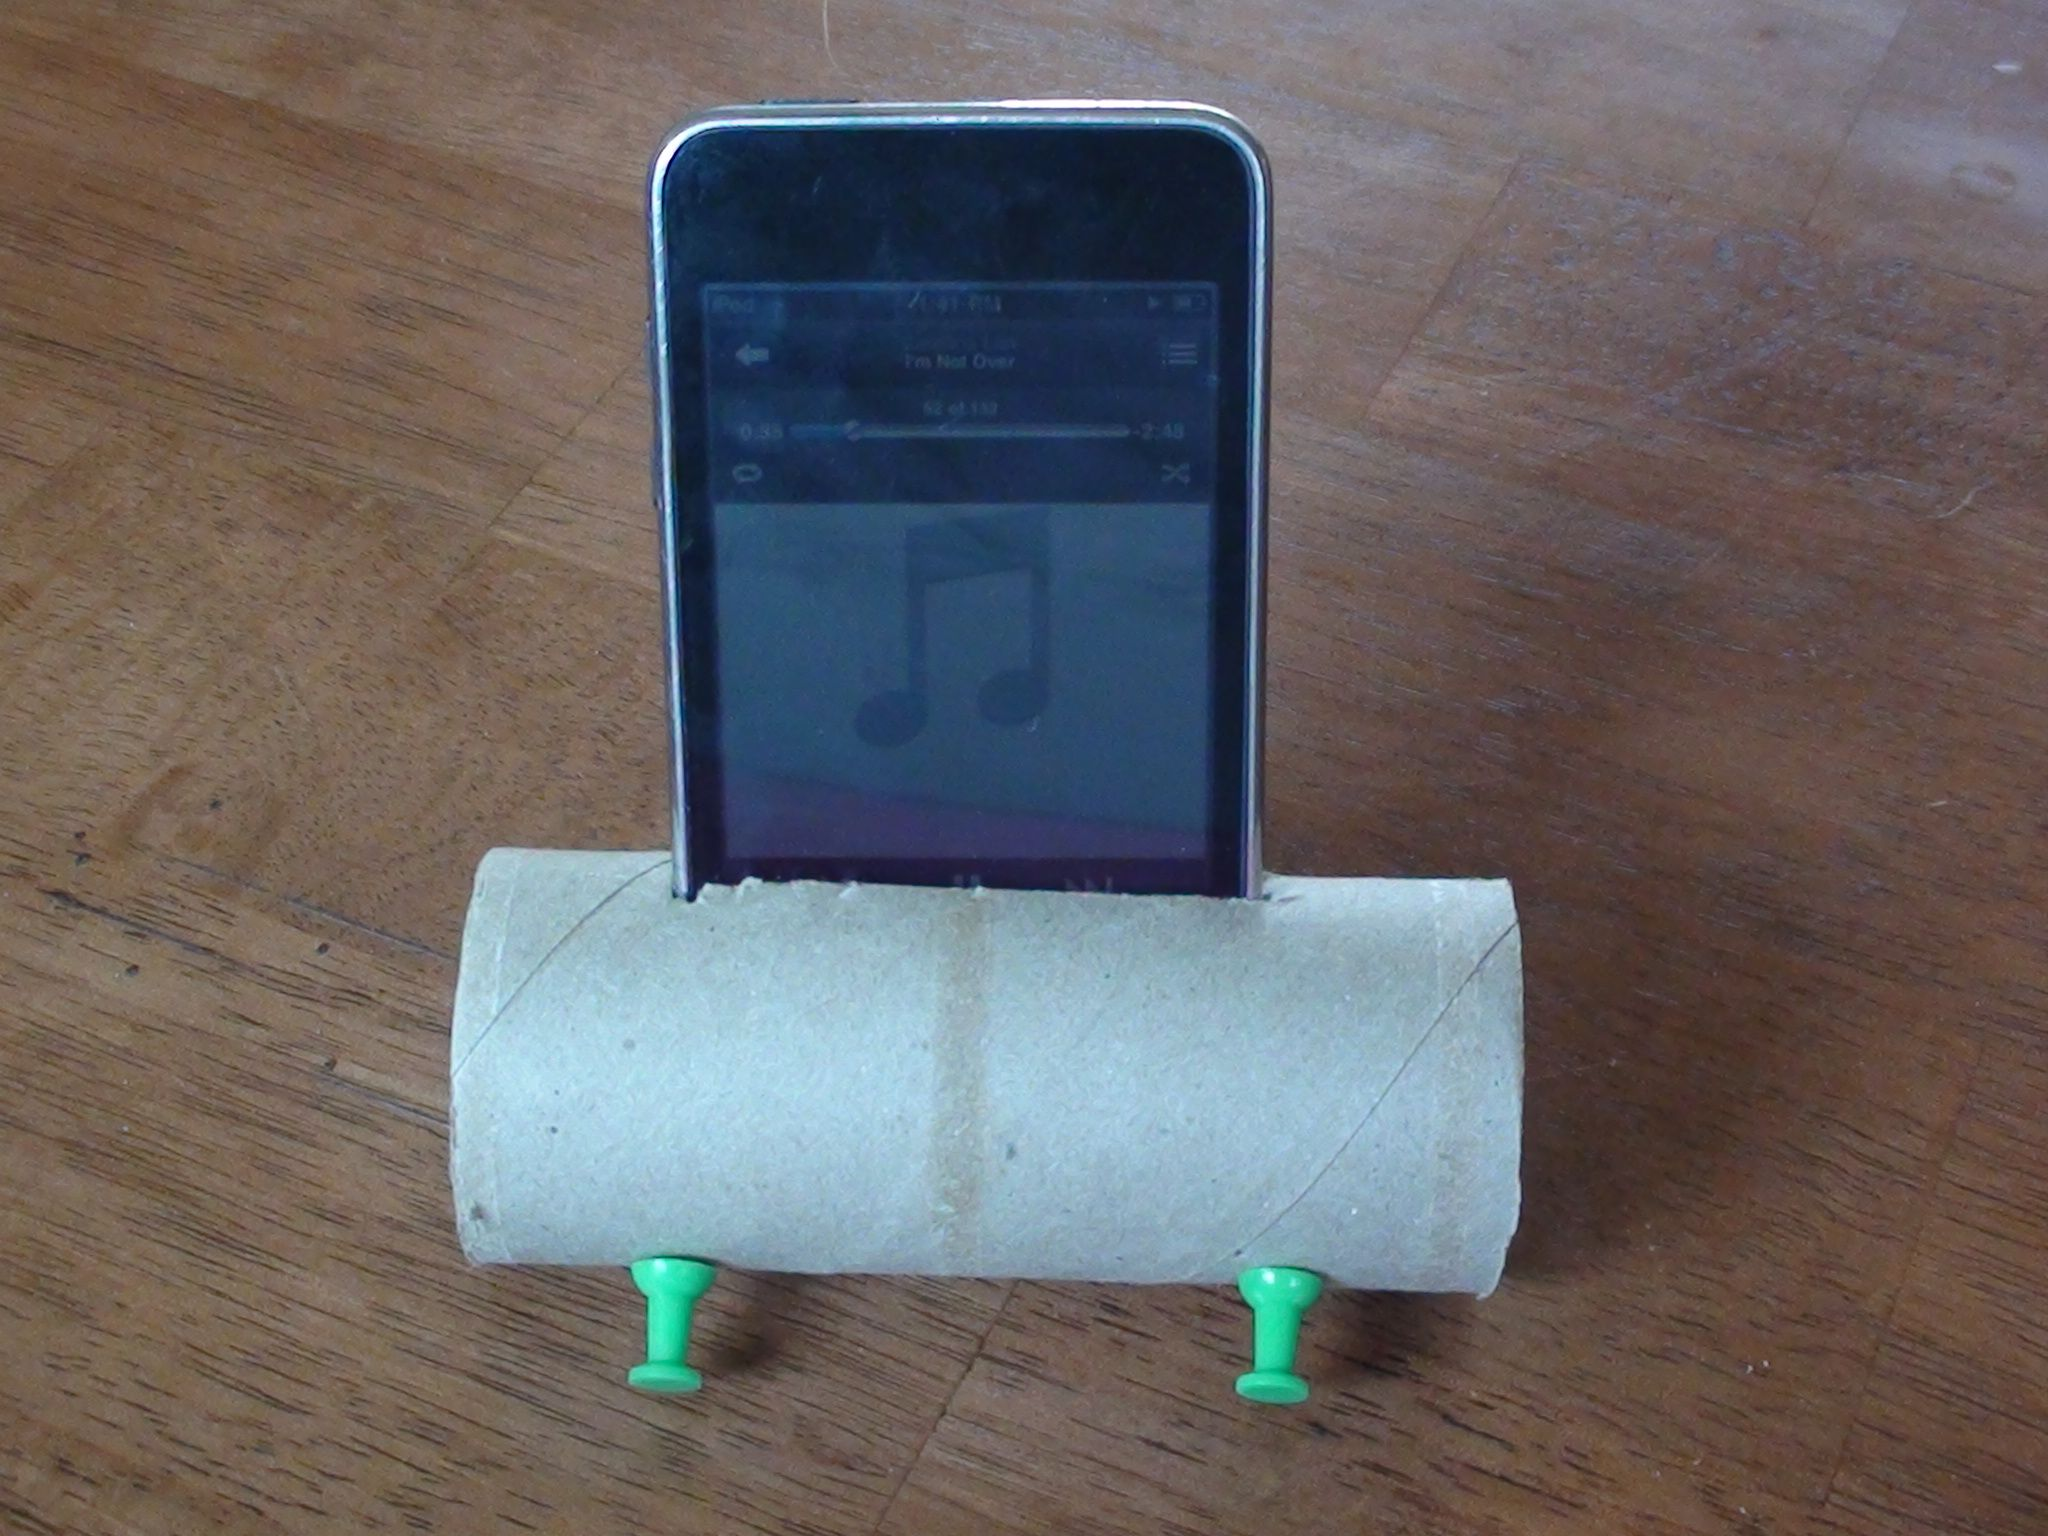 Make your own IPOD speaker amplifier using a toilet paper roll and some pushpins to keep it from rolling.  It really works if you have external speakers